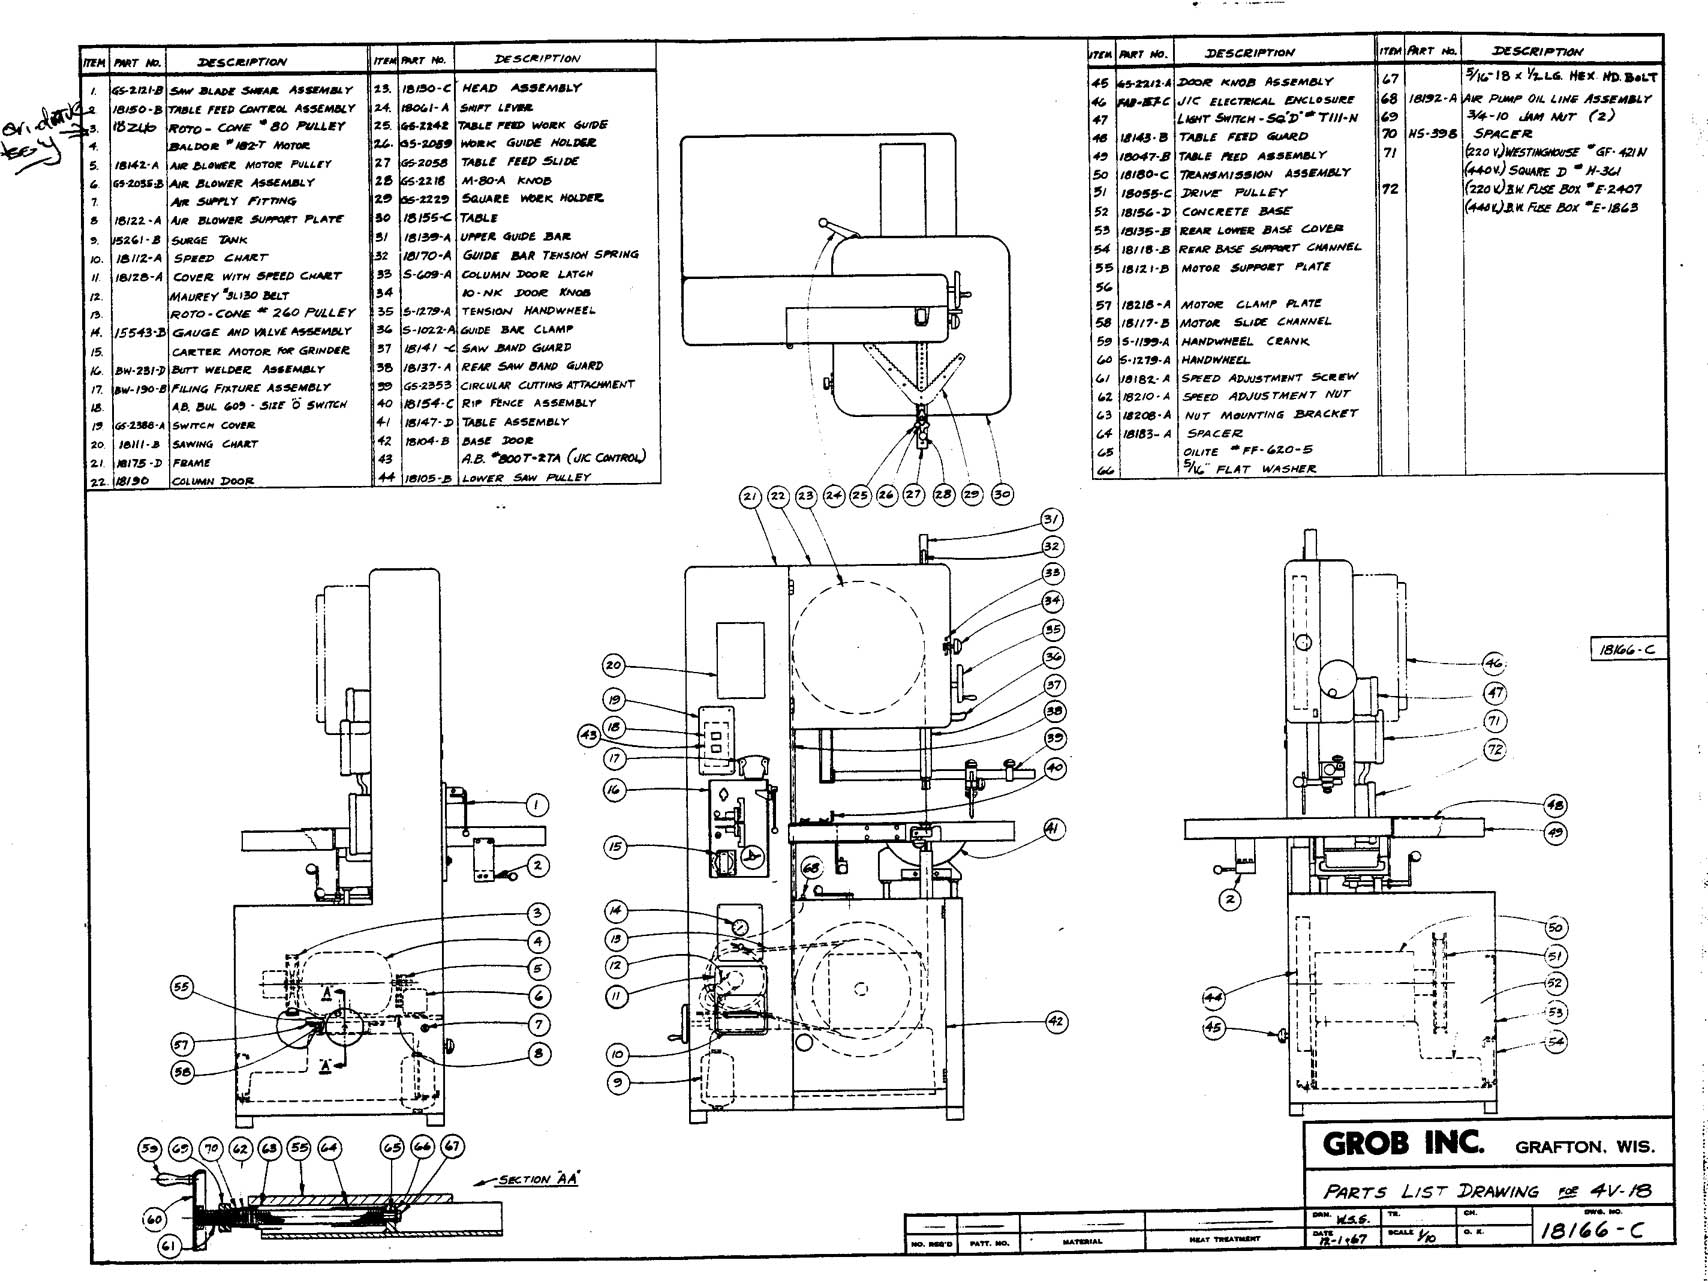 Main Parts 4V18 manual machine and accessories parts lists machine parts diagram at gsmx.co